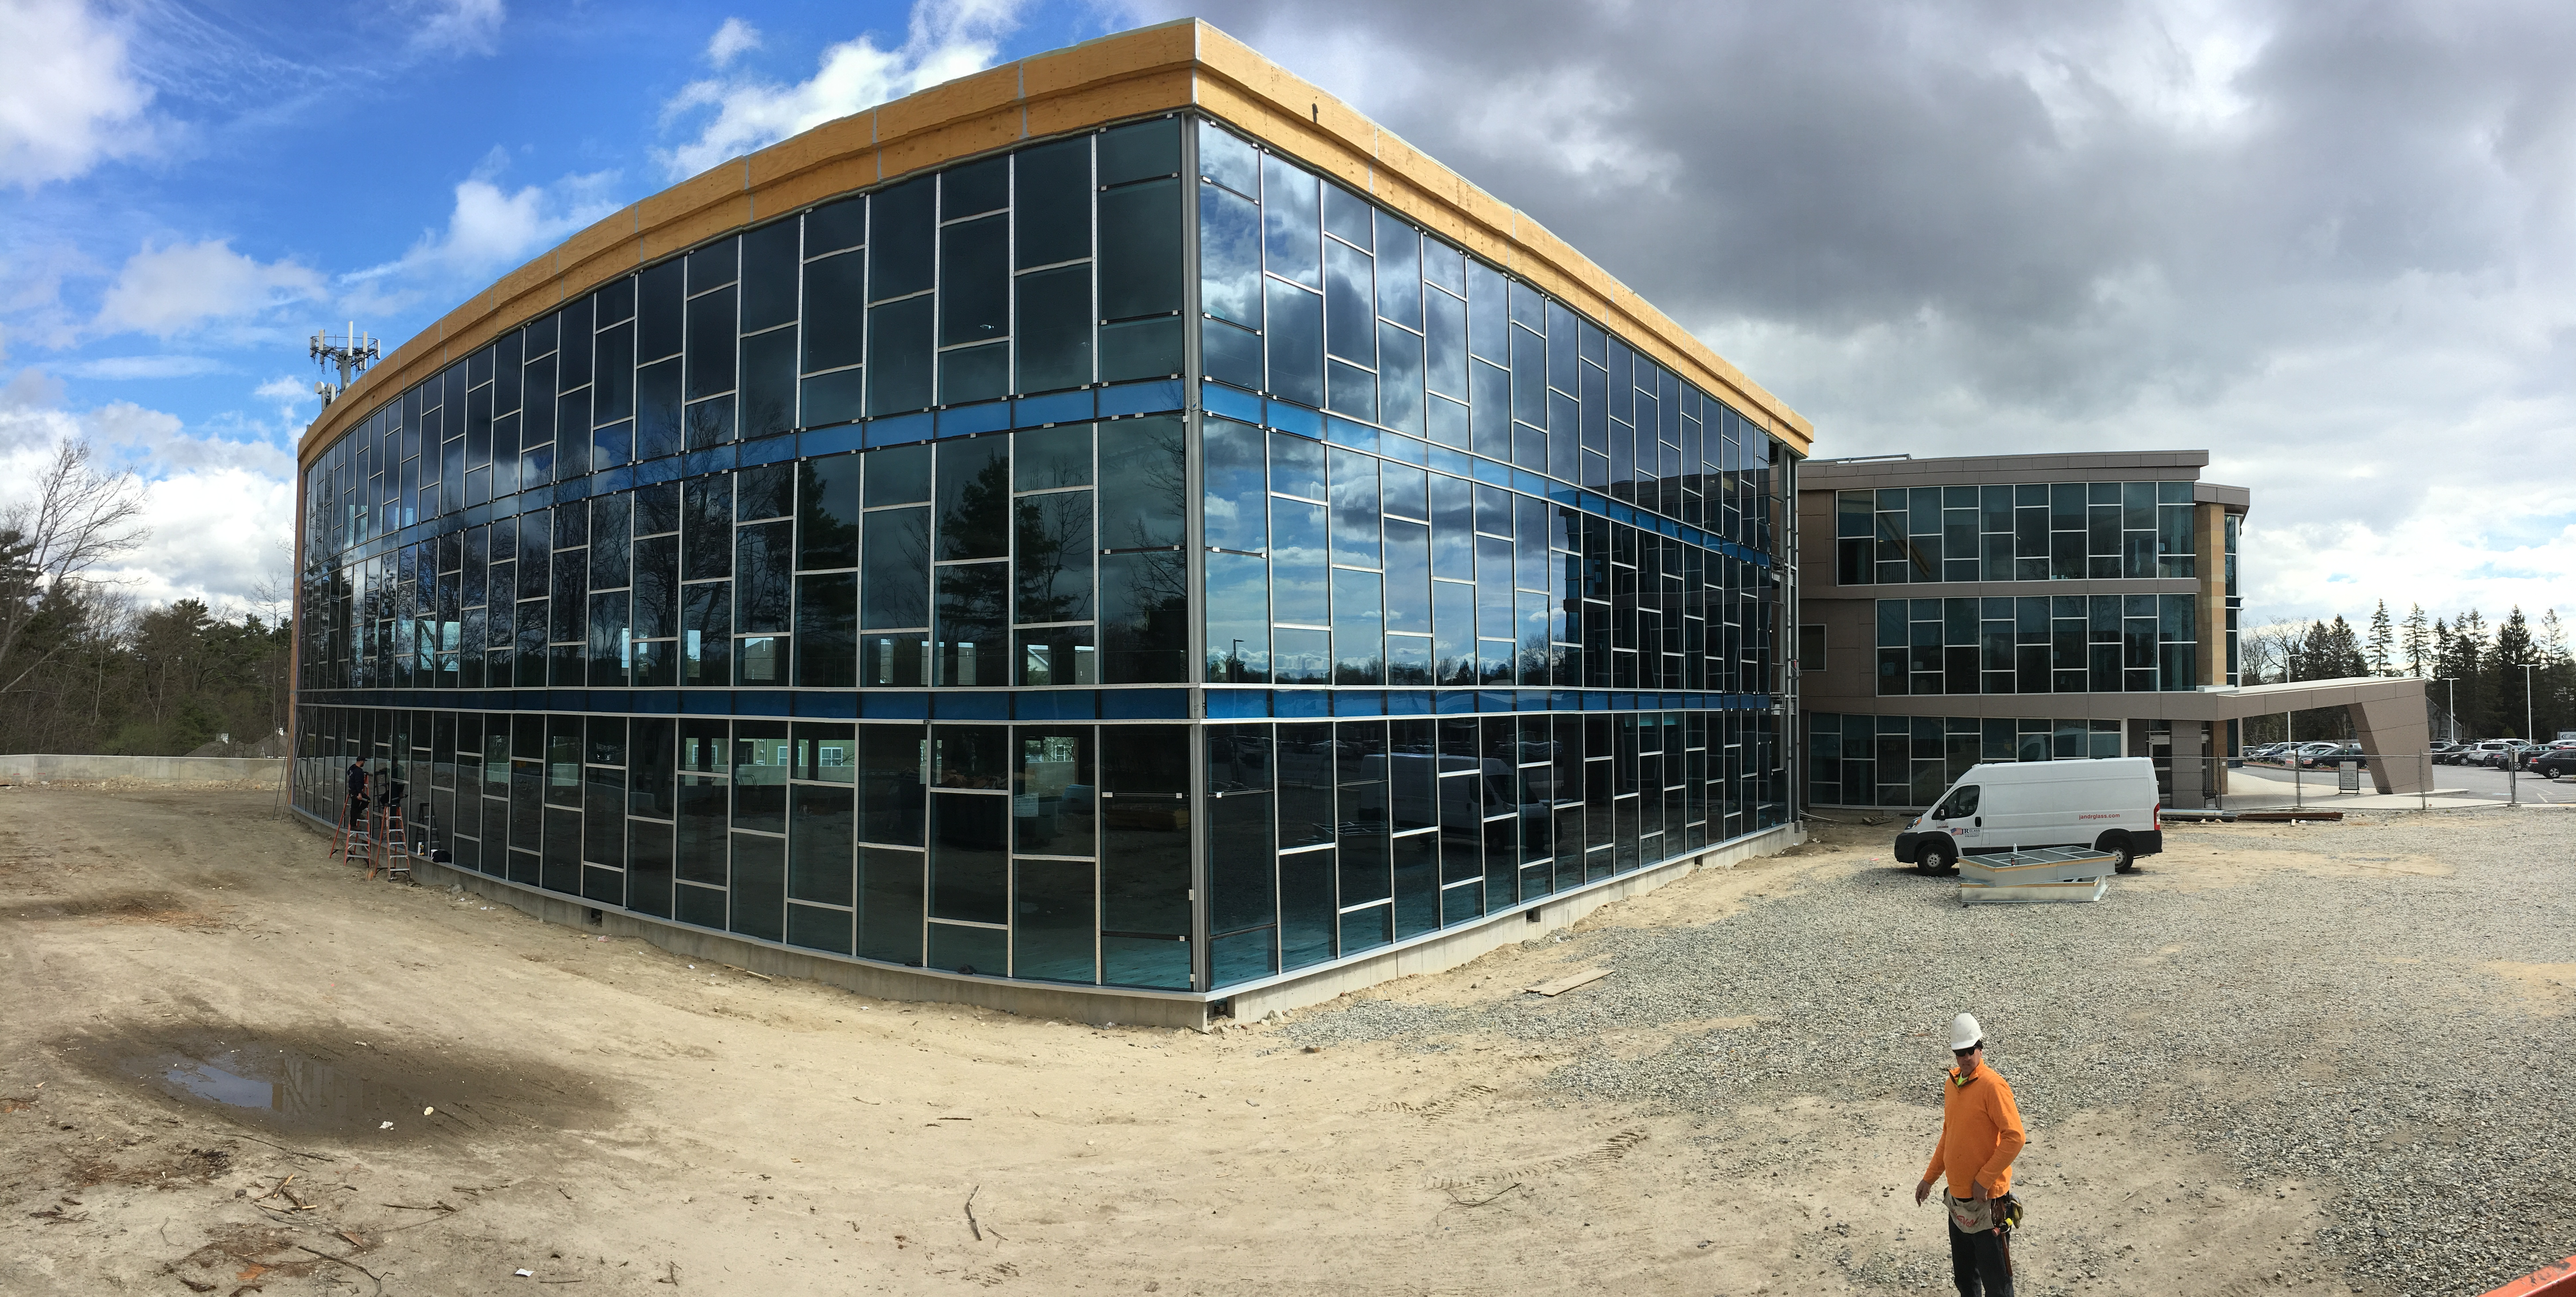 Andover Medical II: Andover Medical II will be complete later this year. The first phase was completed in 2014. Our part is the curtain wall and entrances.